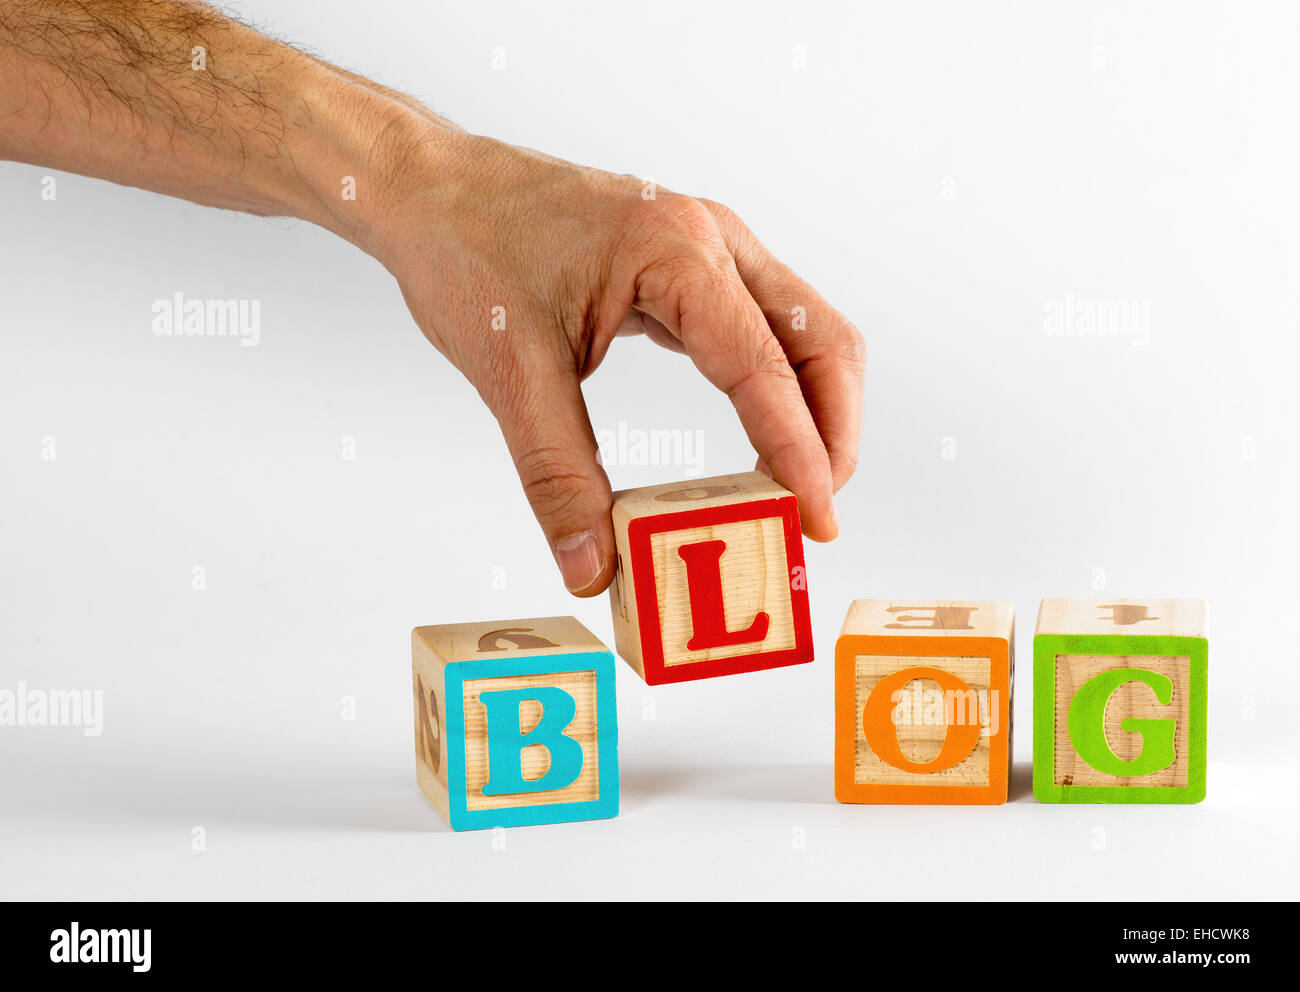 Male Hand Spelling the Word Blog with Colorful Children Blocks on White Background - Stock Image